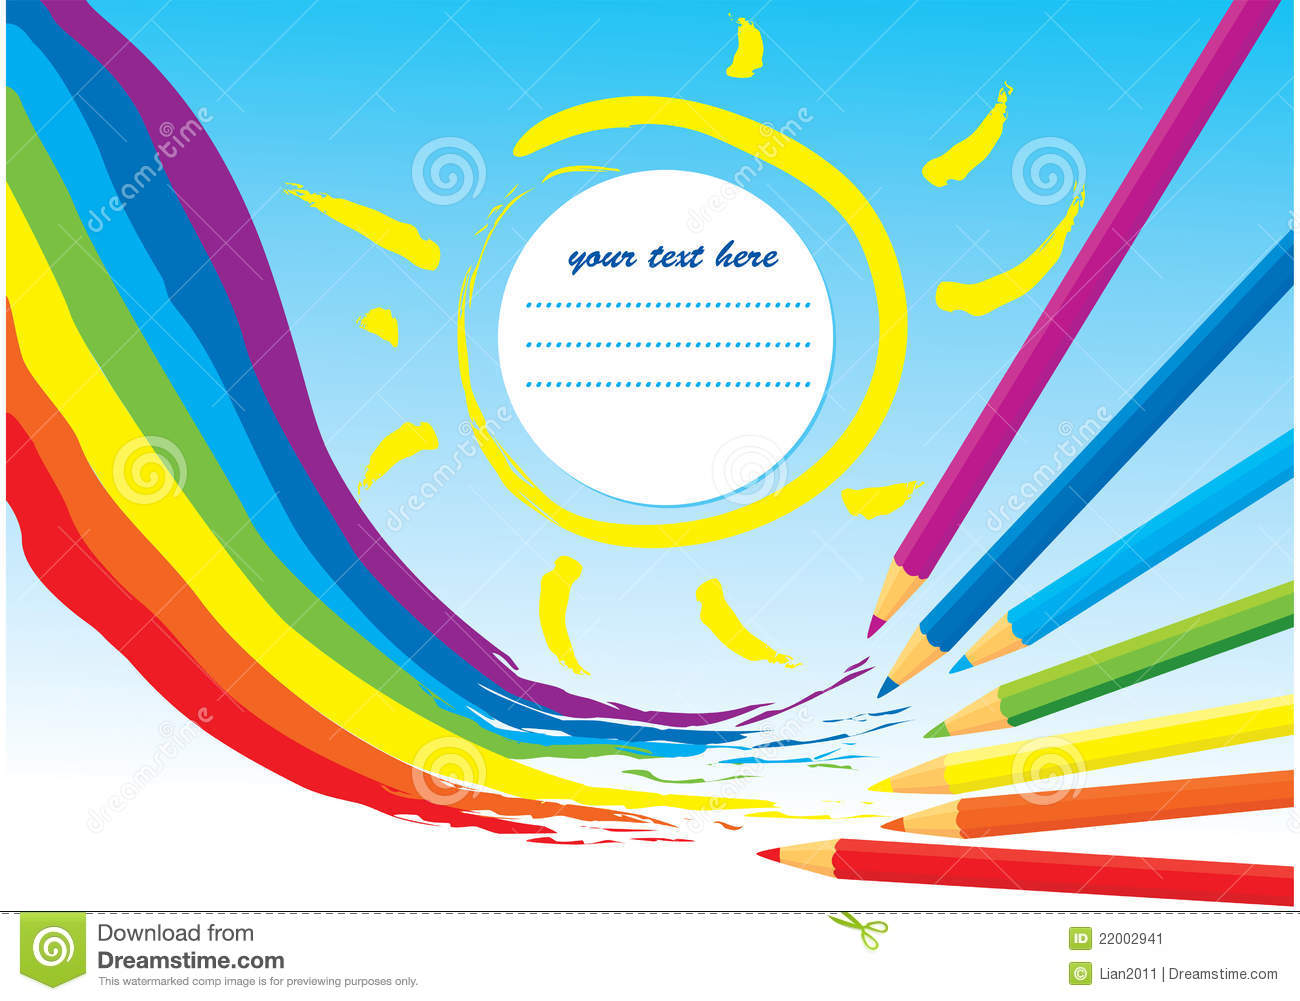 Notebook And Pen Sketch Stock Vector Art More Images Of: Rainbow, Sun And Color Pencils Stock Vector